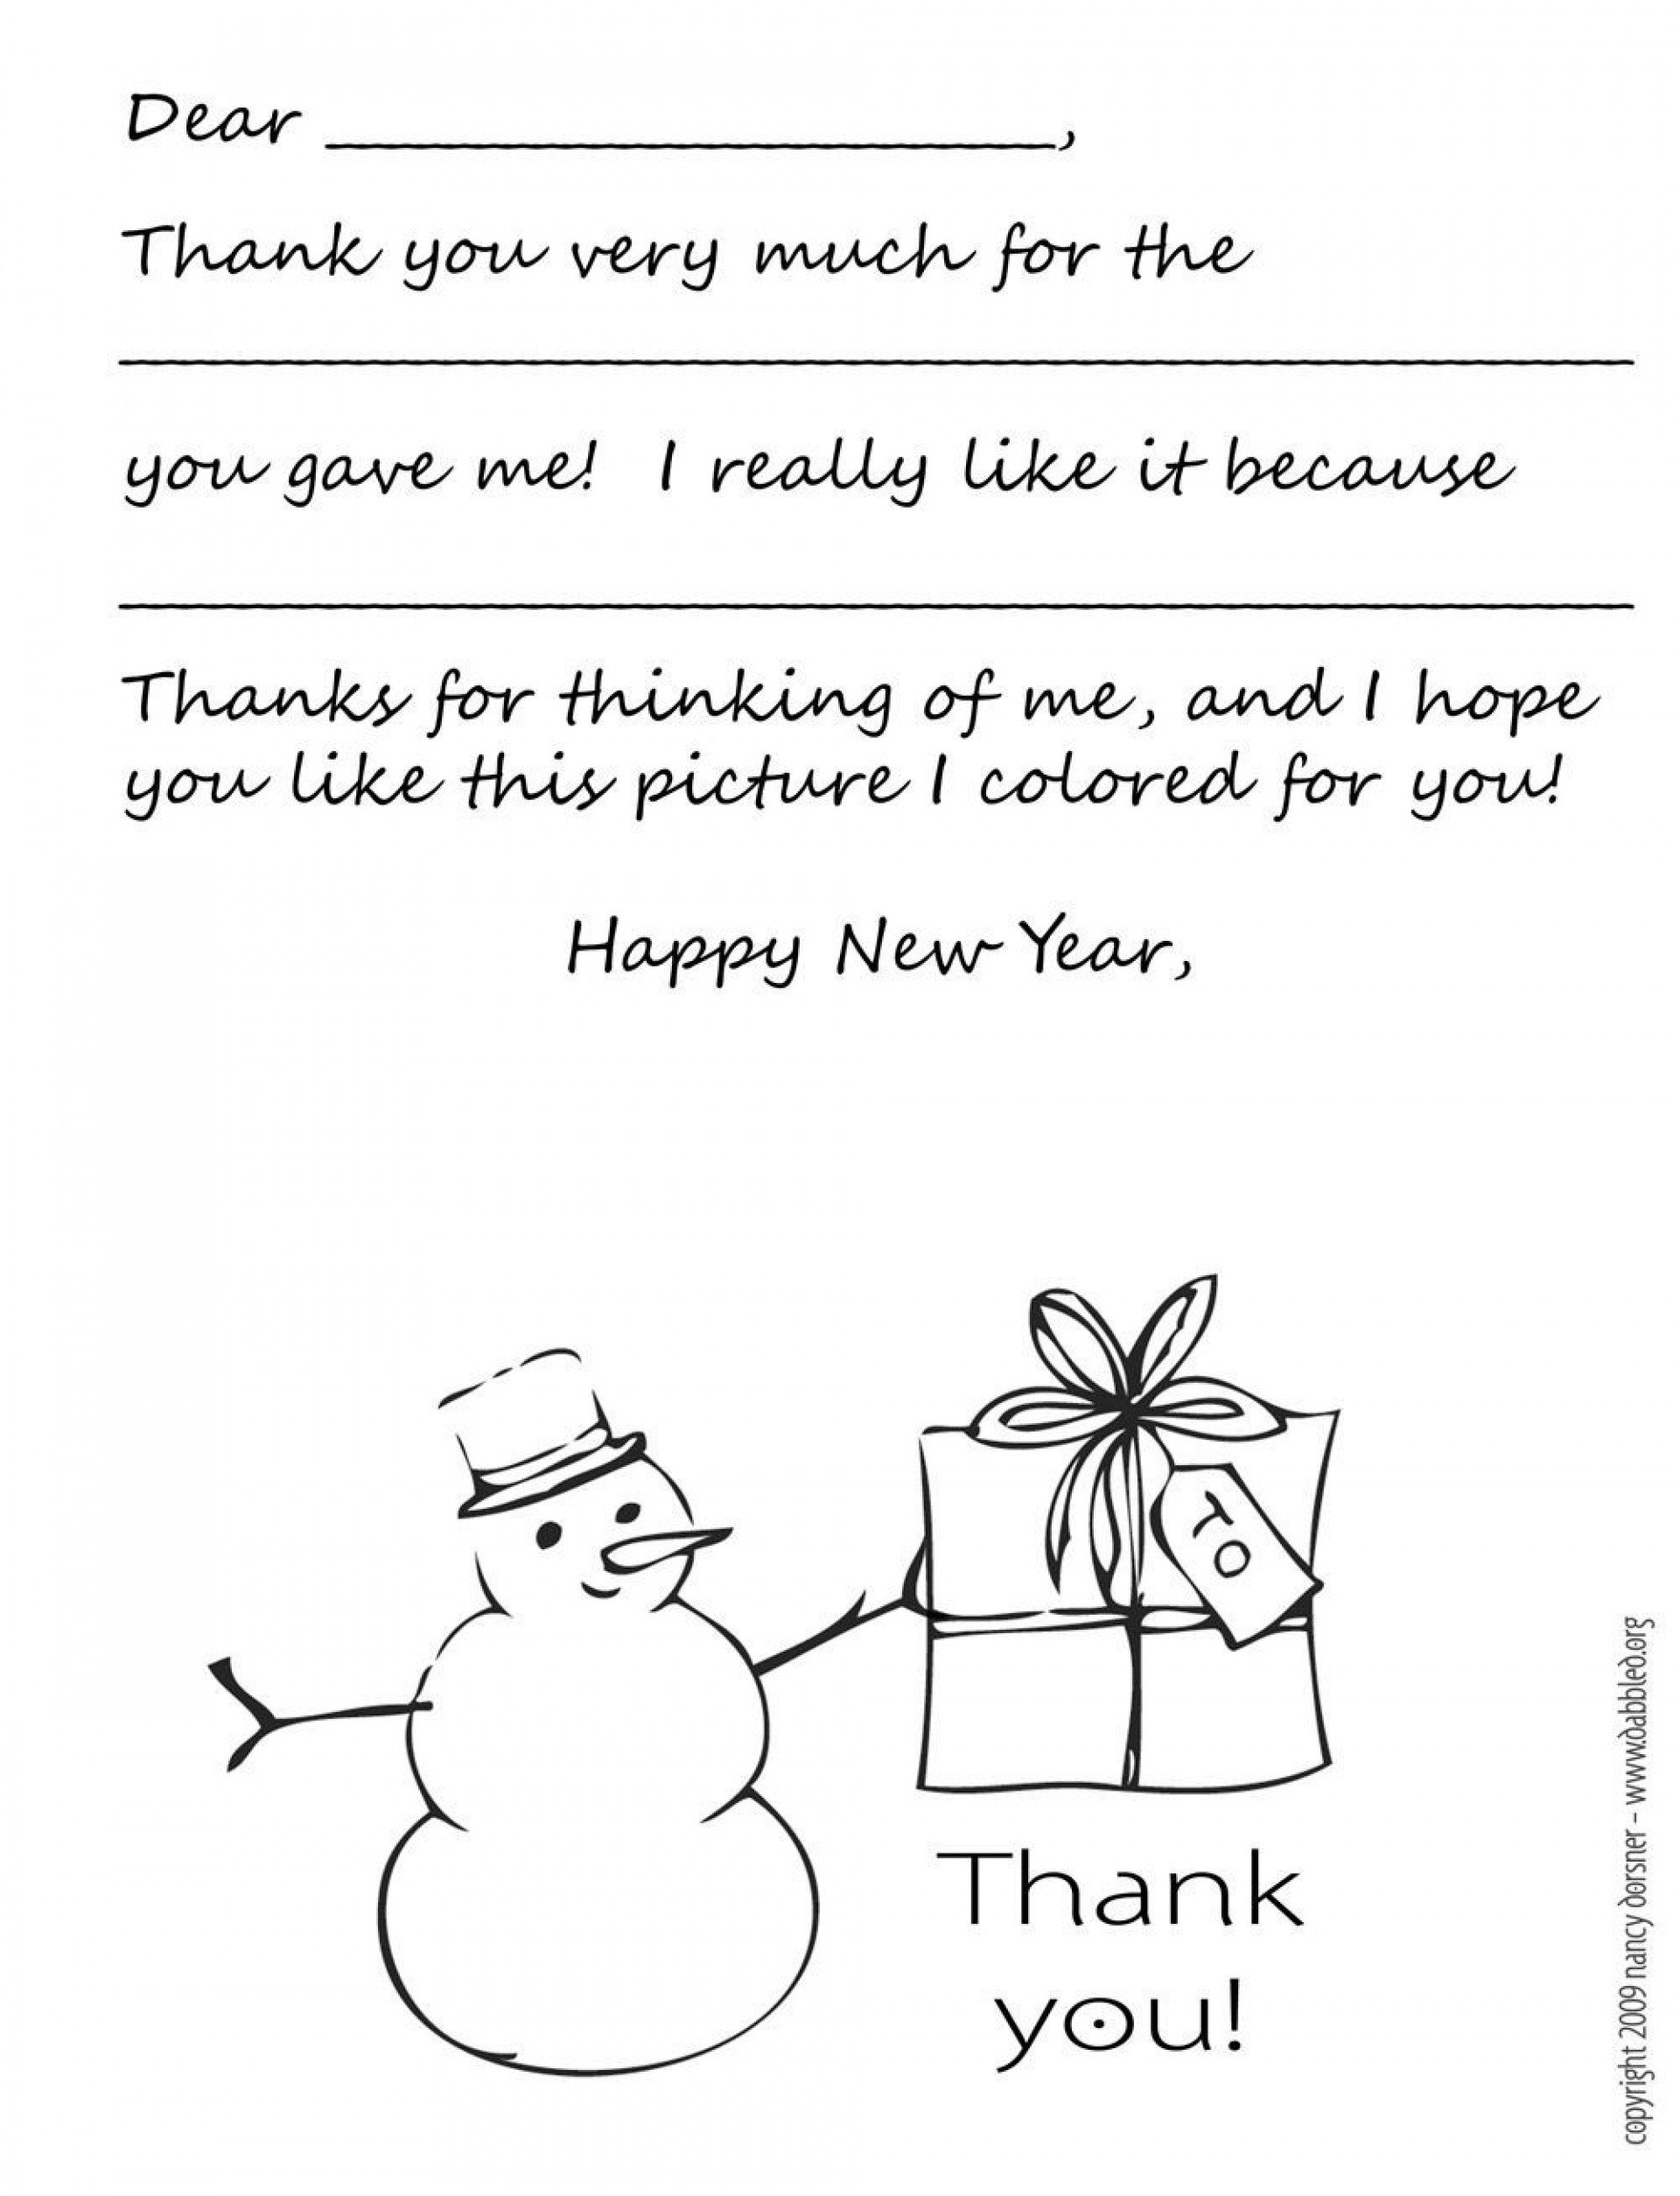 001 Magnificent Christma Thank You Note Template Free Concept  Letter Card1920